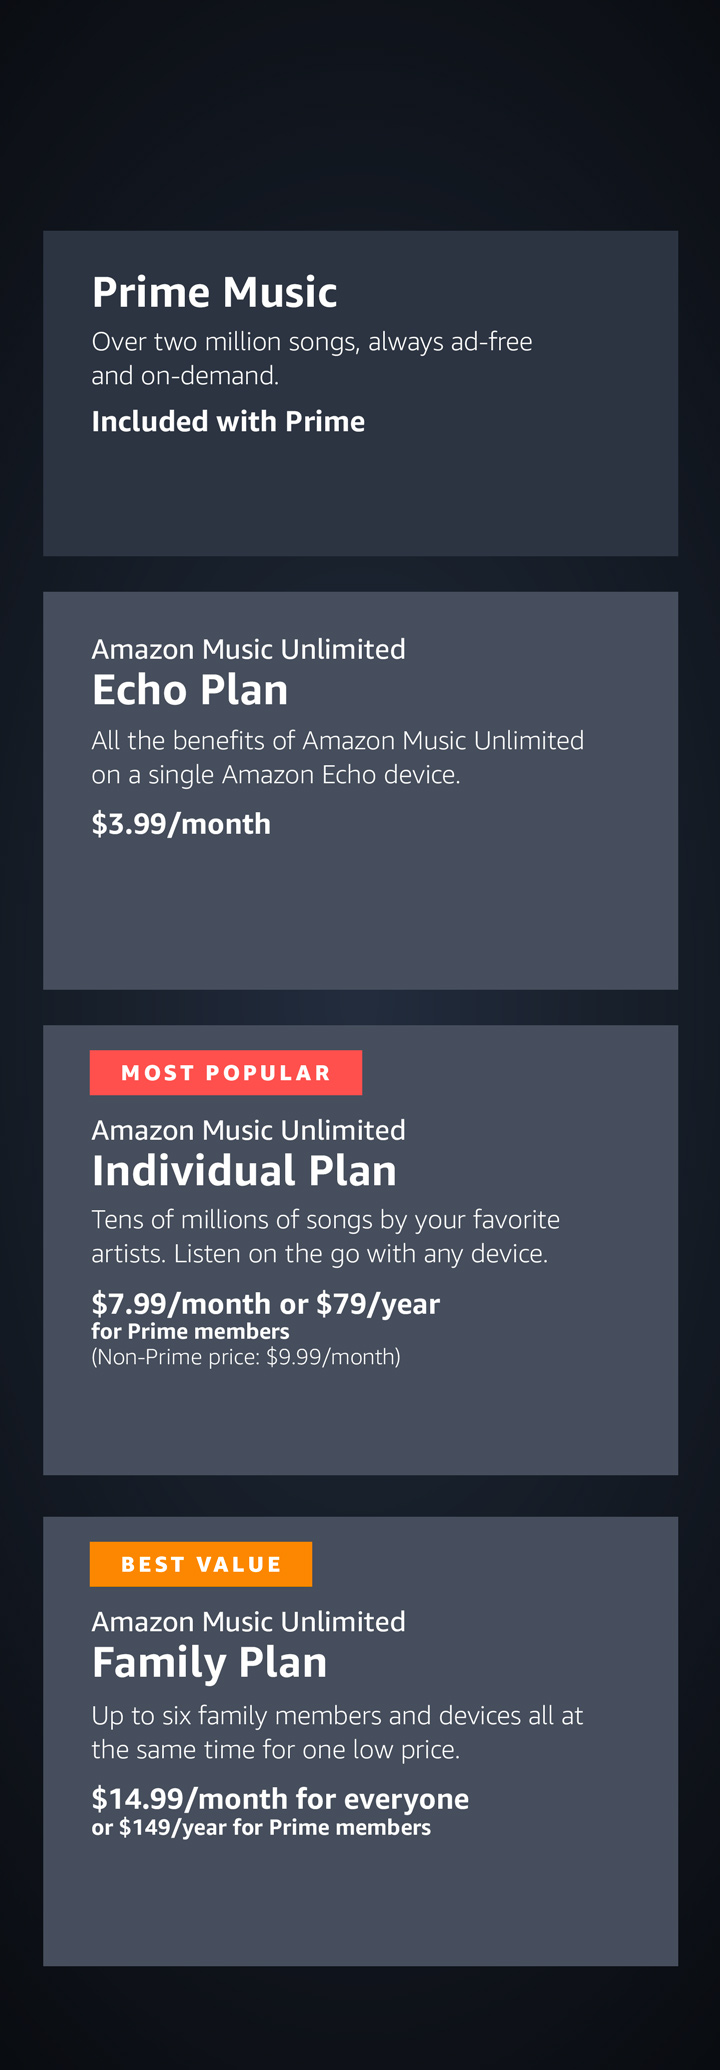 Choose the right Amazon Music plan for you. Prime Music - Over two million songs, always ad-free and on-demand. Free with Prime. Amazon Music Unlimited Echo plan - Tens of millions of songs on a single Echo, Dot, or Tap. Sign up only with Alexa. Just ask. $3.99 per month. Amazon Music Unlimited Individual plan - Tens of millions of songs on one account, on all your devices. $7.99 per month or $79 peryear for Prime members (Non-Prime price: $9.99/month). Amazon Music Unlimited Family plan - All the benefits of the individual plan for up to six family members. $14.99 per month or $149 per year.